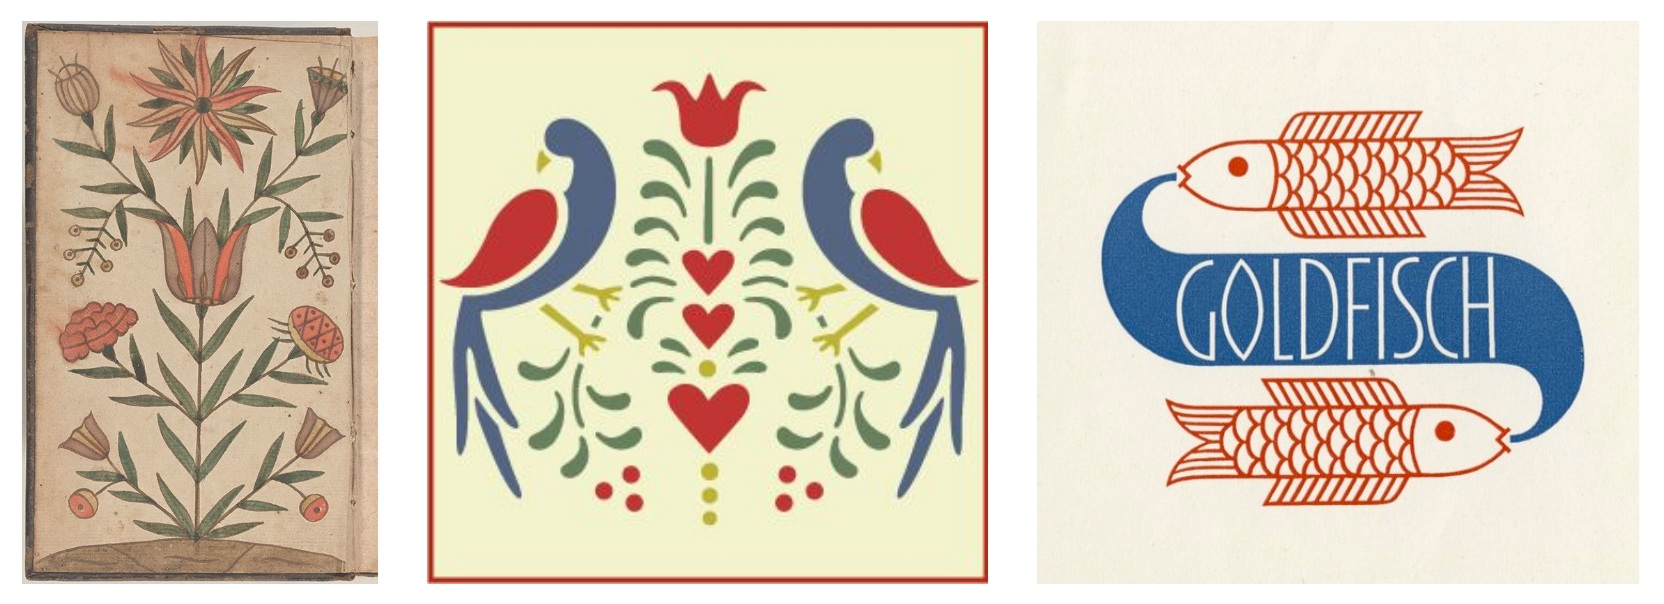 German folk art and 1930's graphic design as inspiration